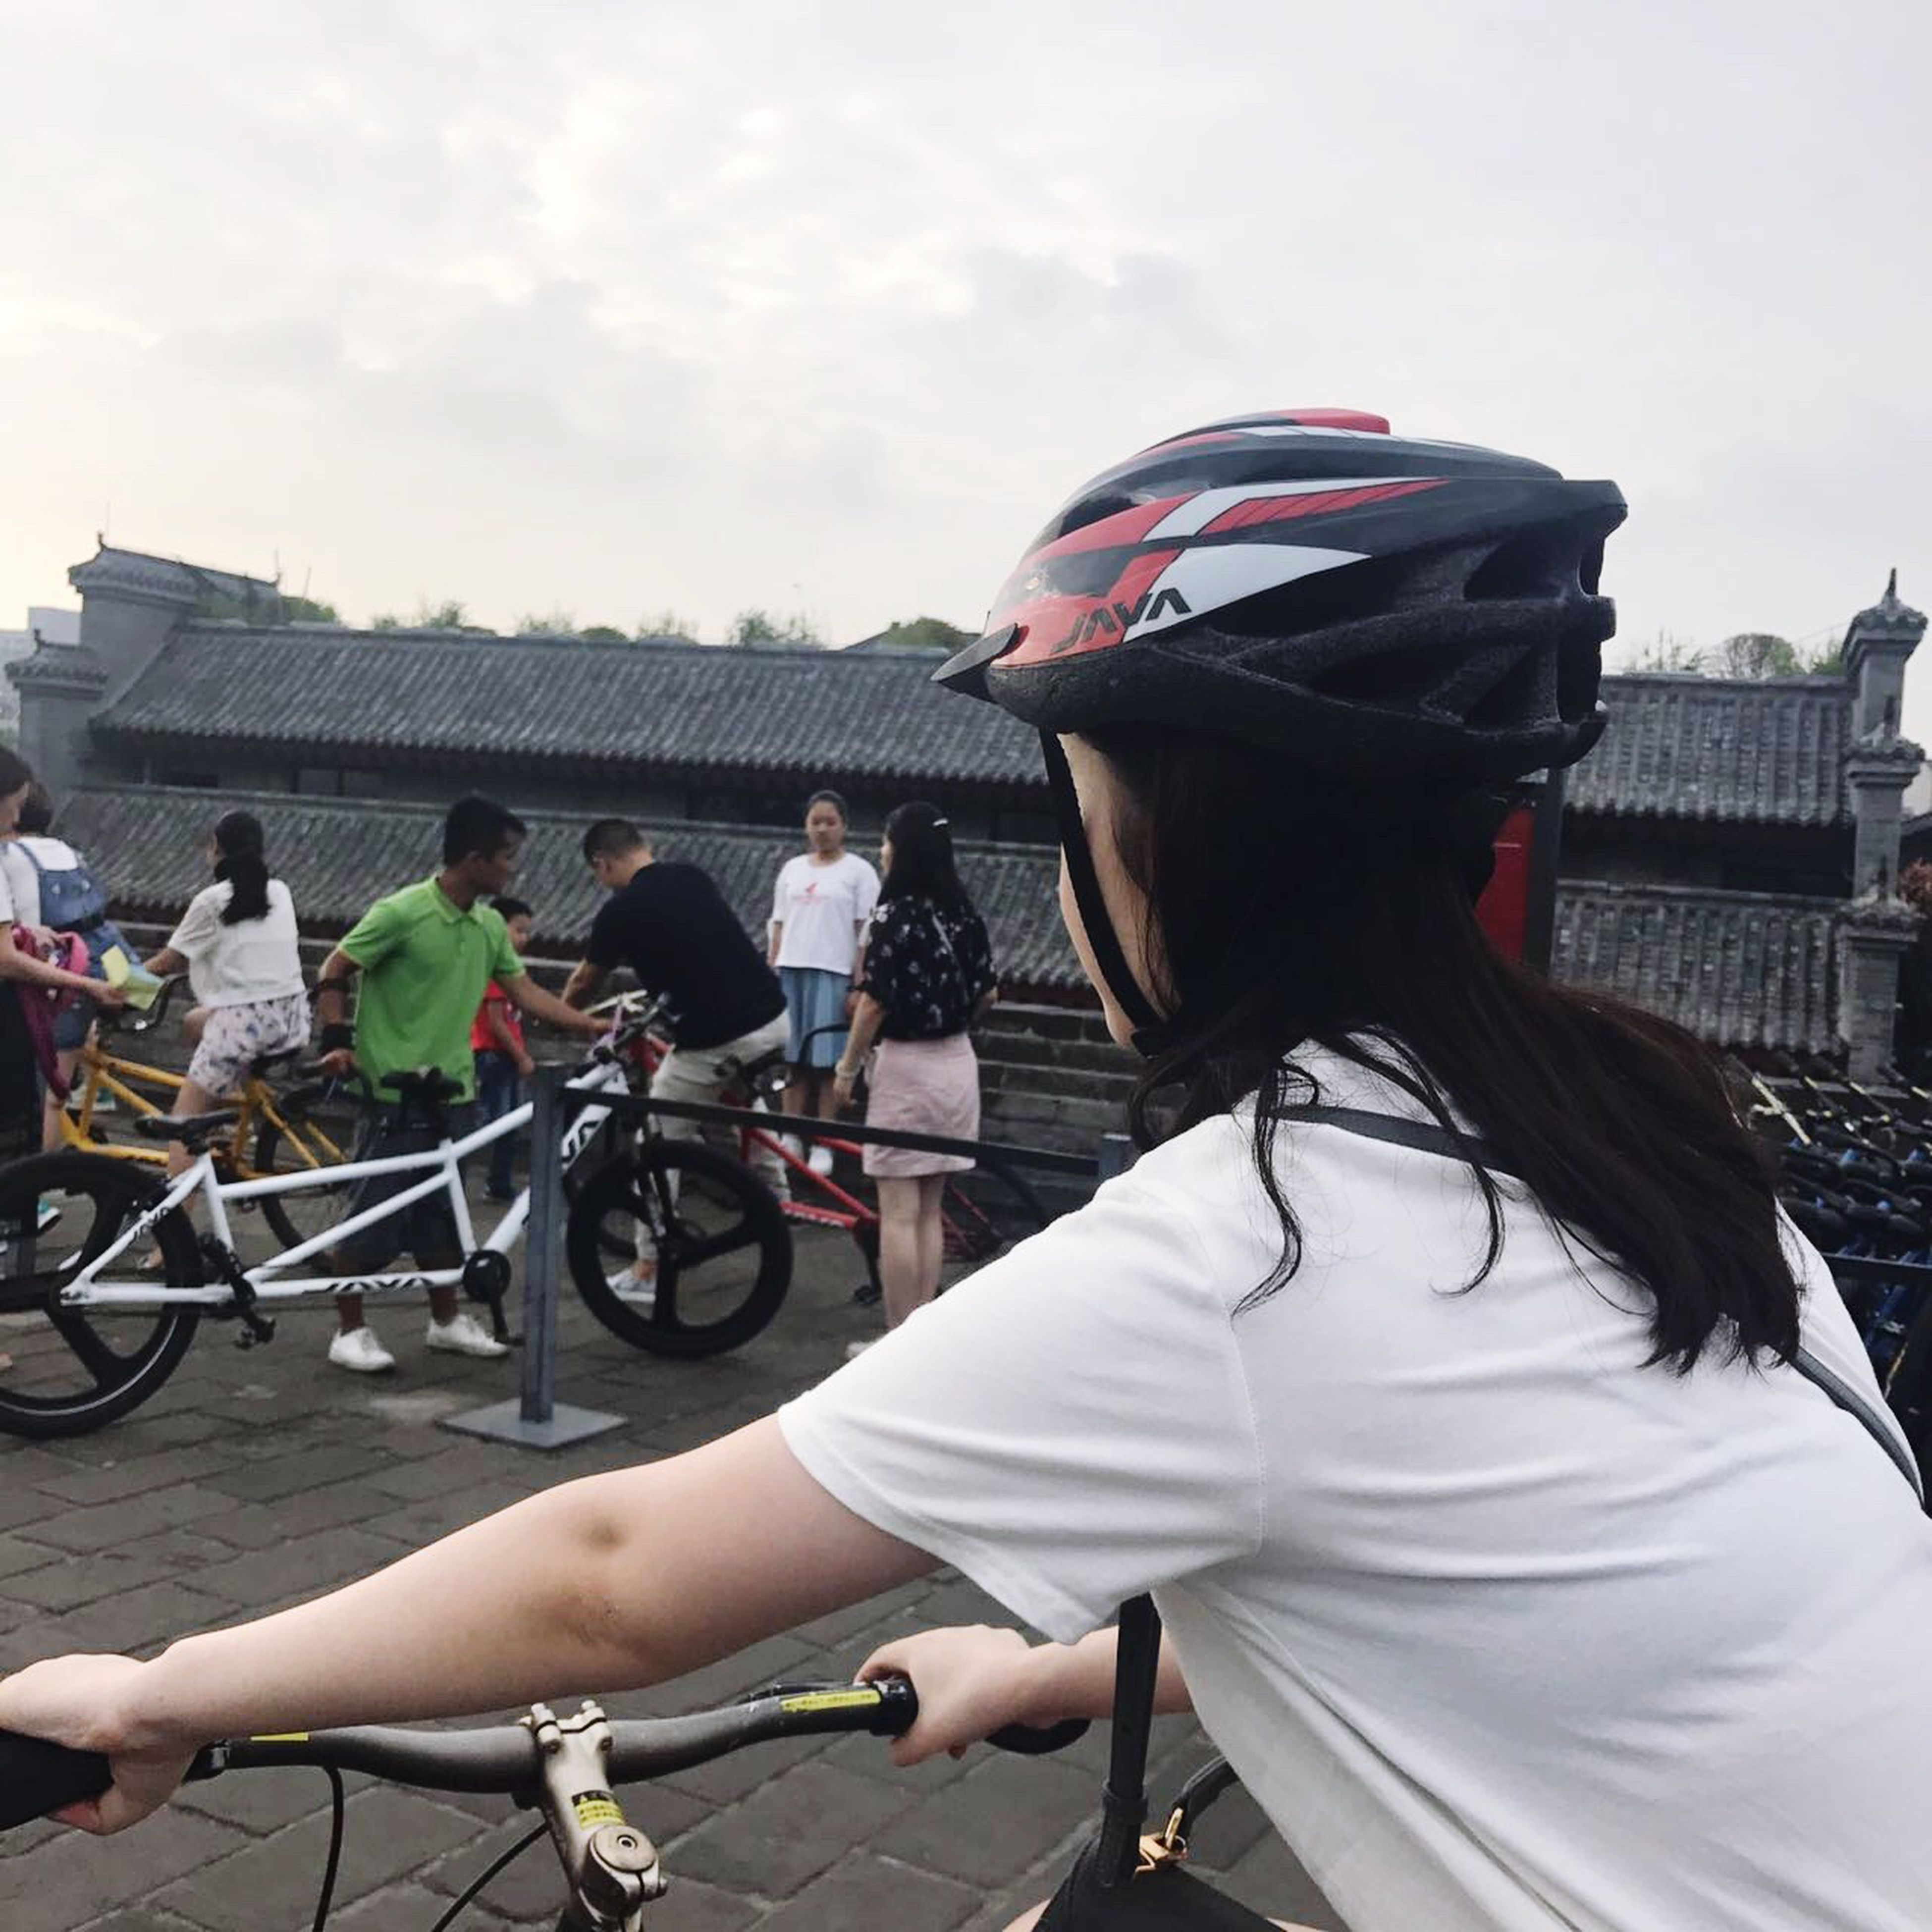 bicycle, real people, lifestyles, cycling, transportation, outdoors, leisure activity, mode of transport, women, men, land vehicle, large group of people, riding, built structure, day, sky, architecture, building exterior, helmet, cycling helmet, city, travel destinations